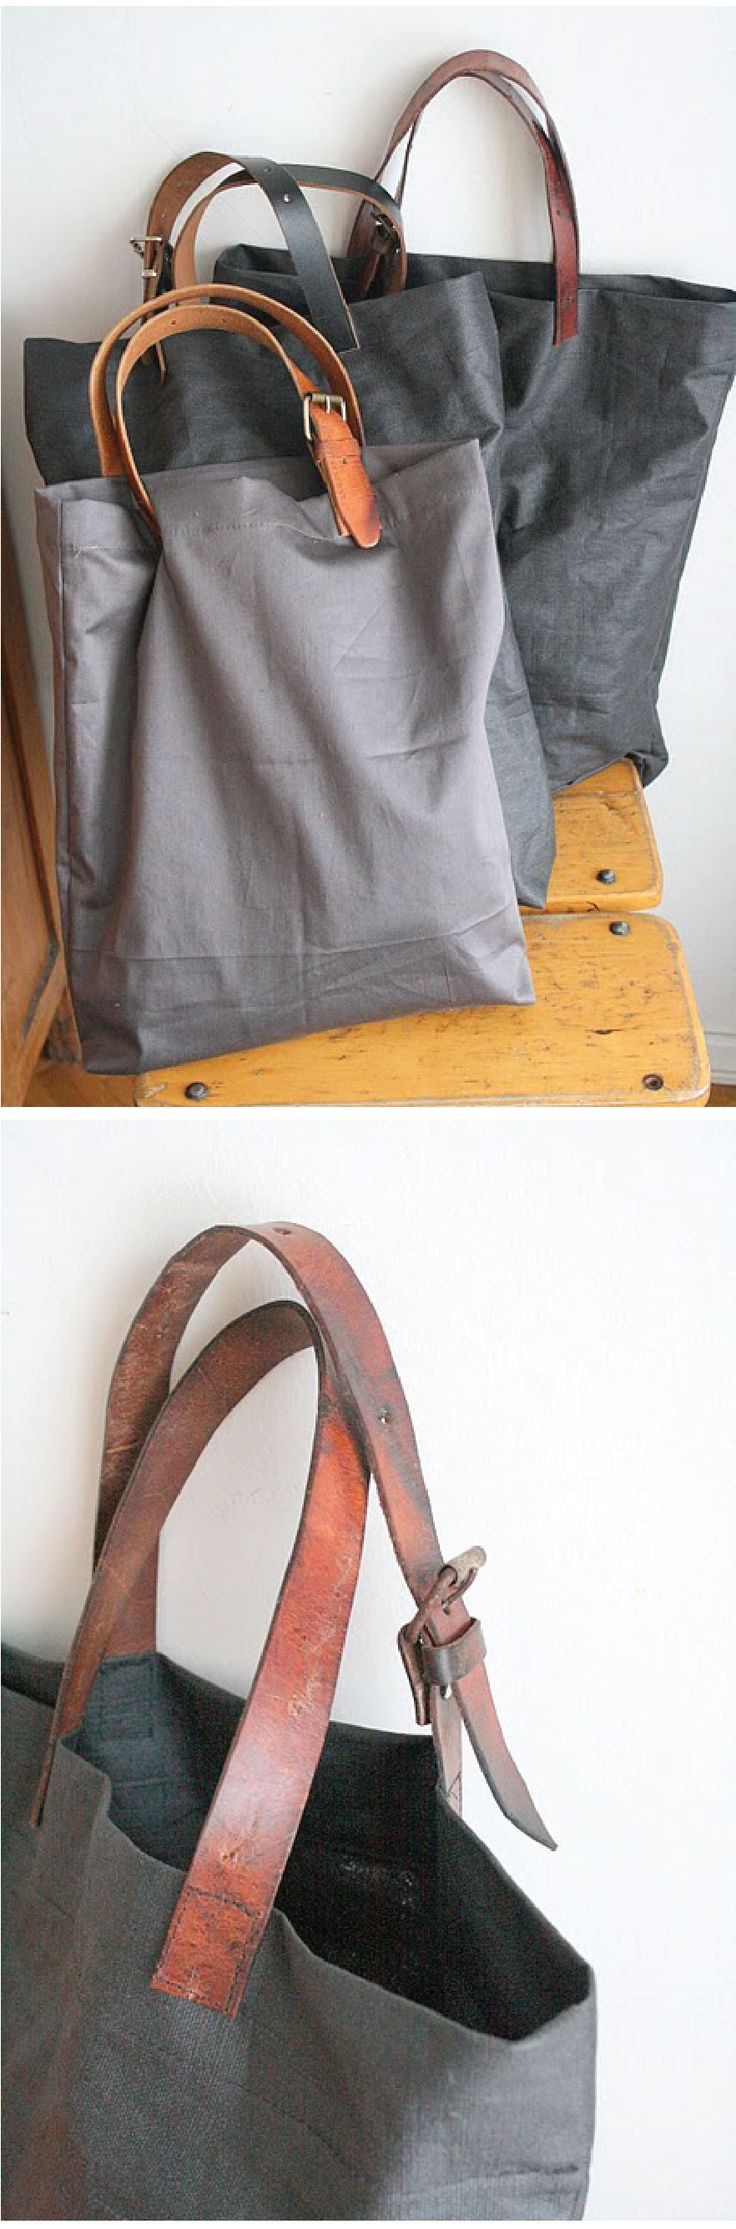 Use old belts to make DIY bag handles. Gloucestershire Resource Centre http://www.grcltd.org/scrapstore/